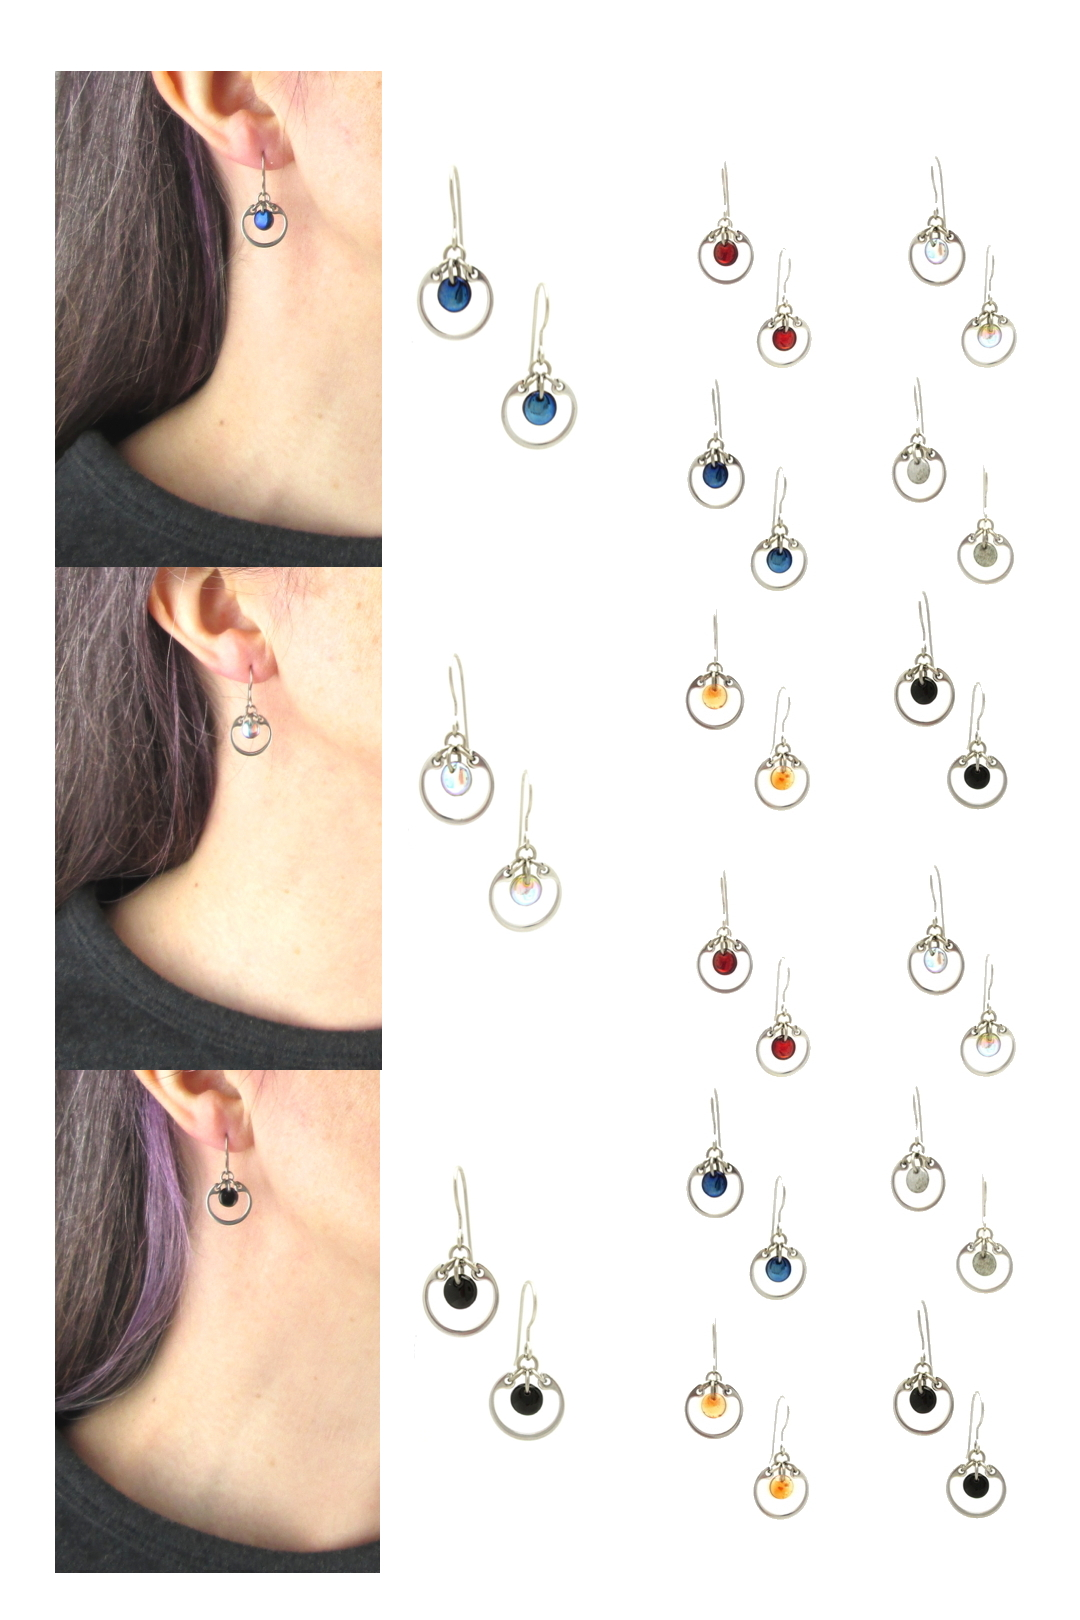 Compiled image of Wraptillion's small modern circle earrings with closeup modeled photos of the earrings, and color choices in red, pale rainbow, navy blue, gray, orange, and black.